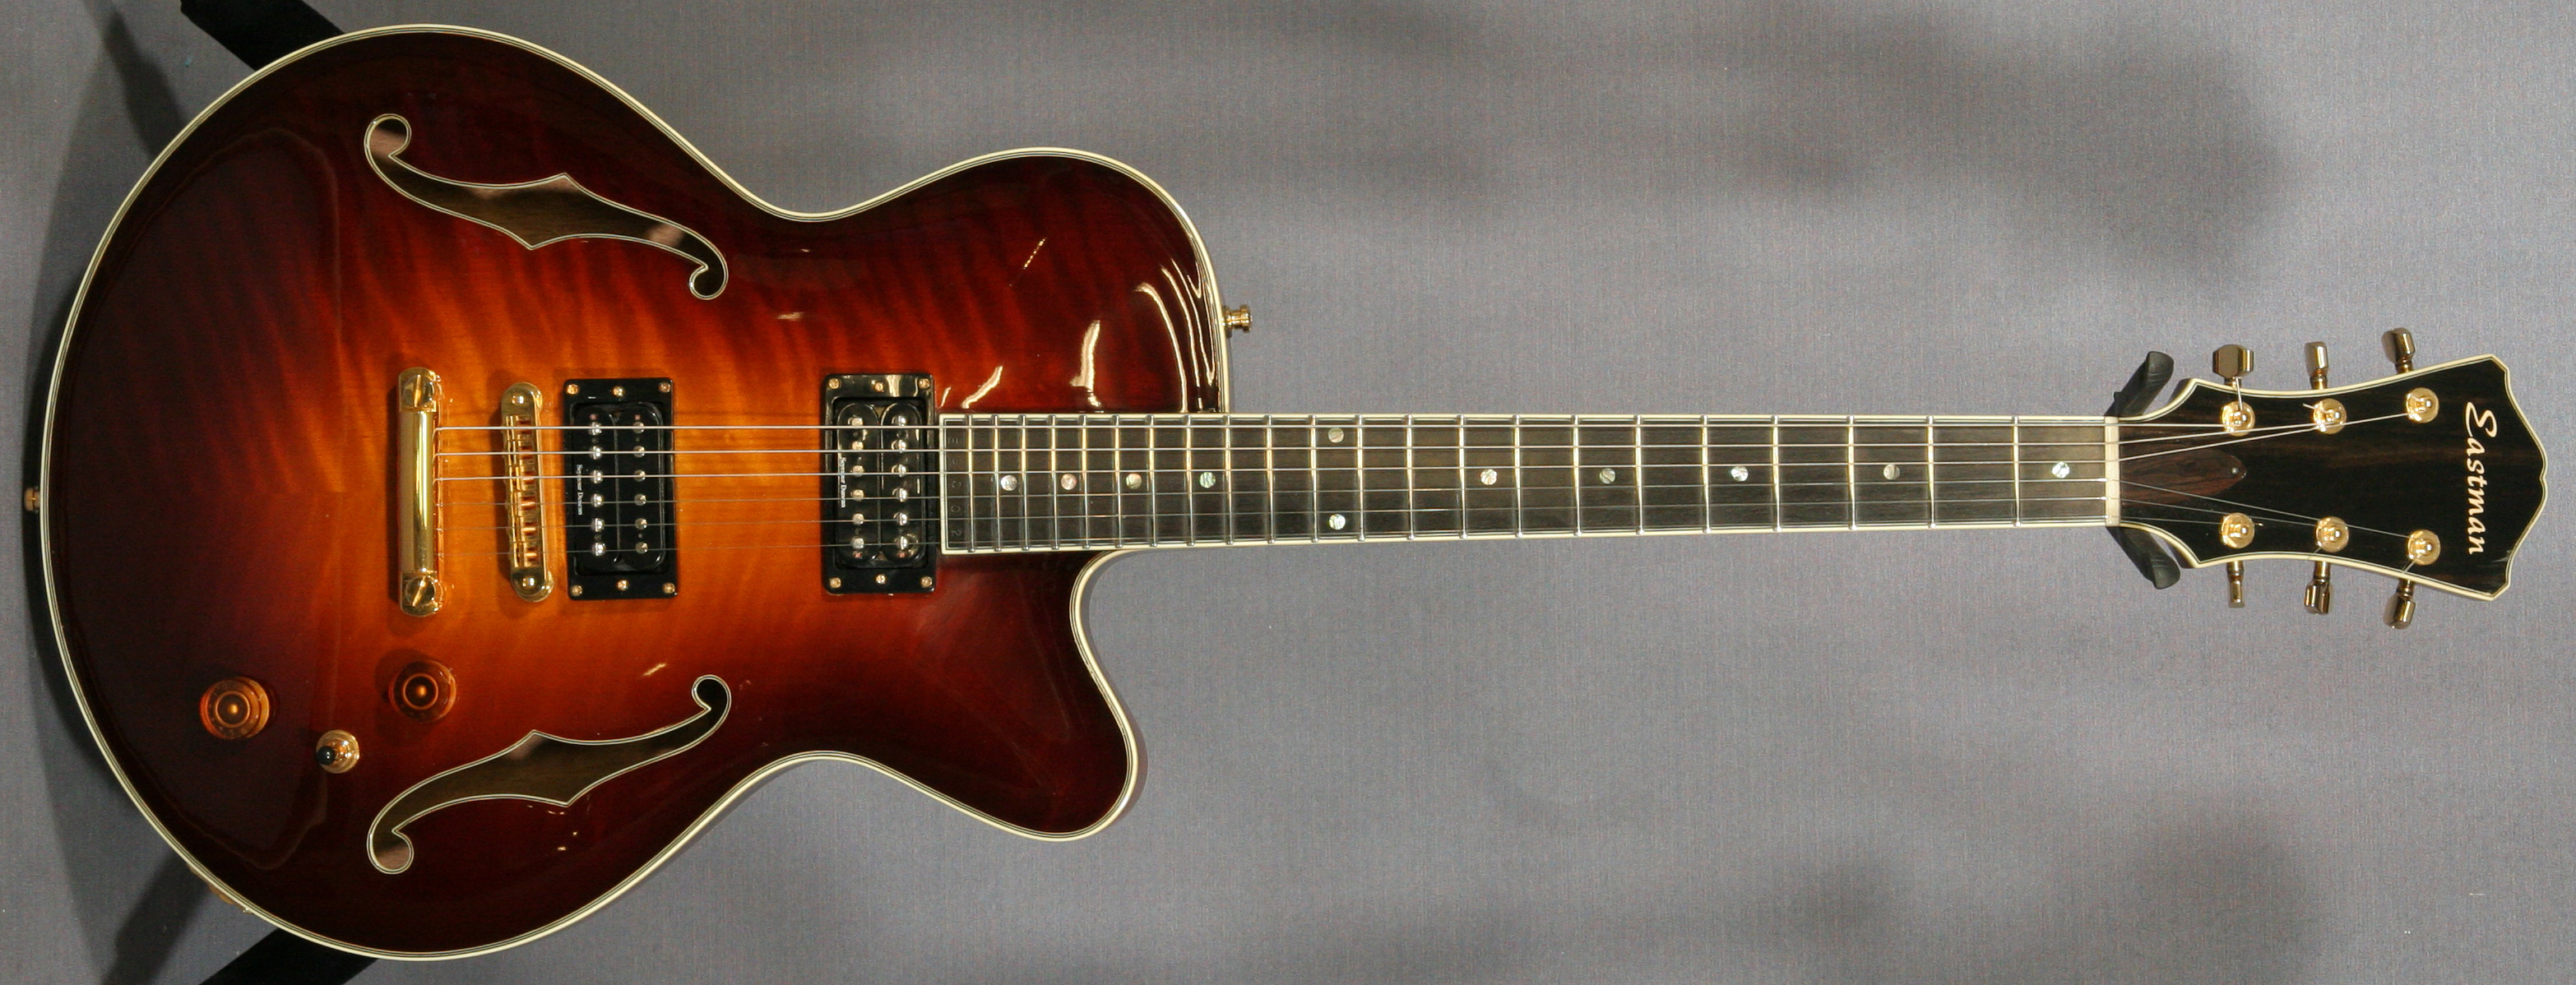 eastman-single-cutaway-blues.jpg